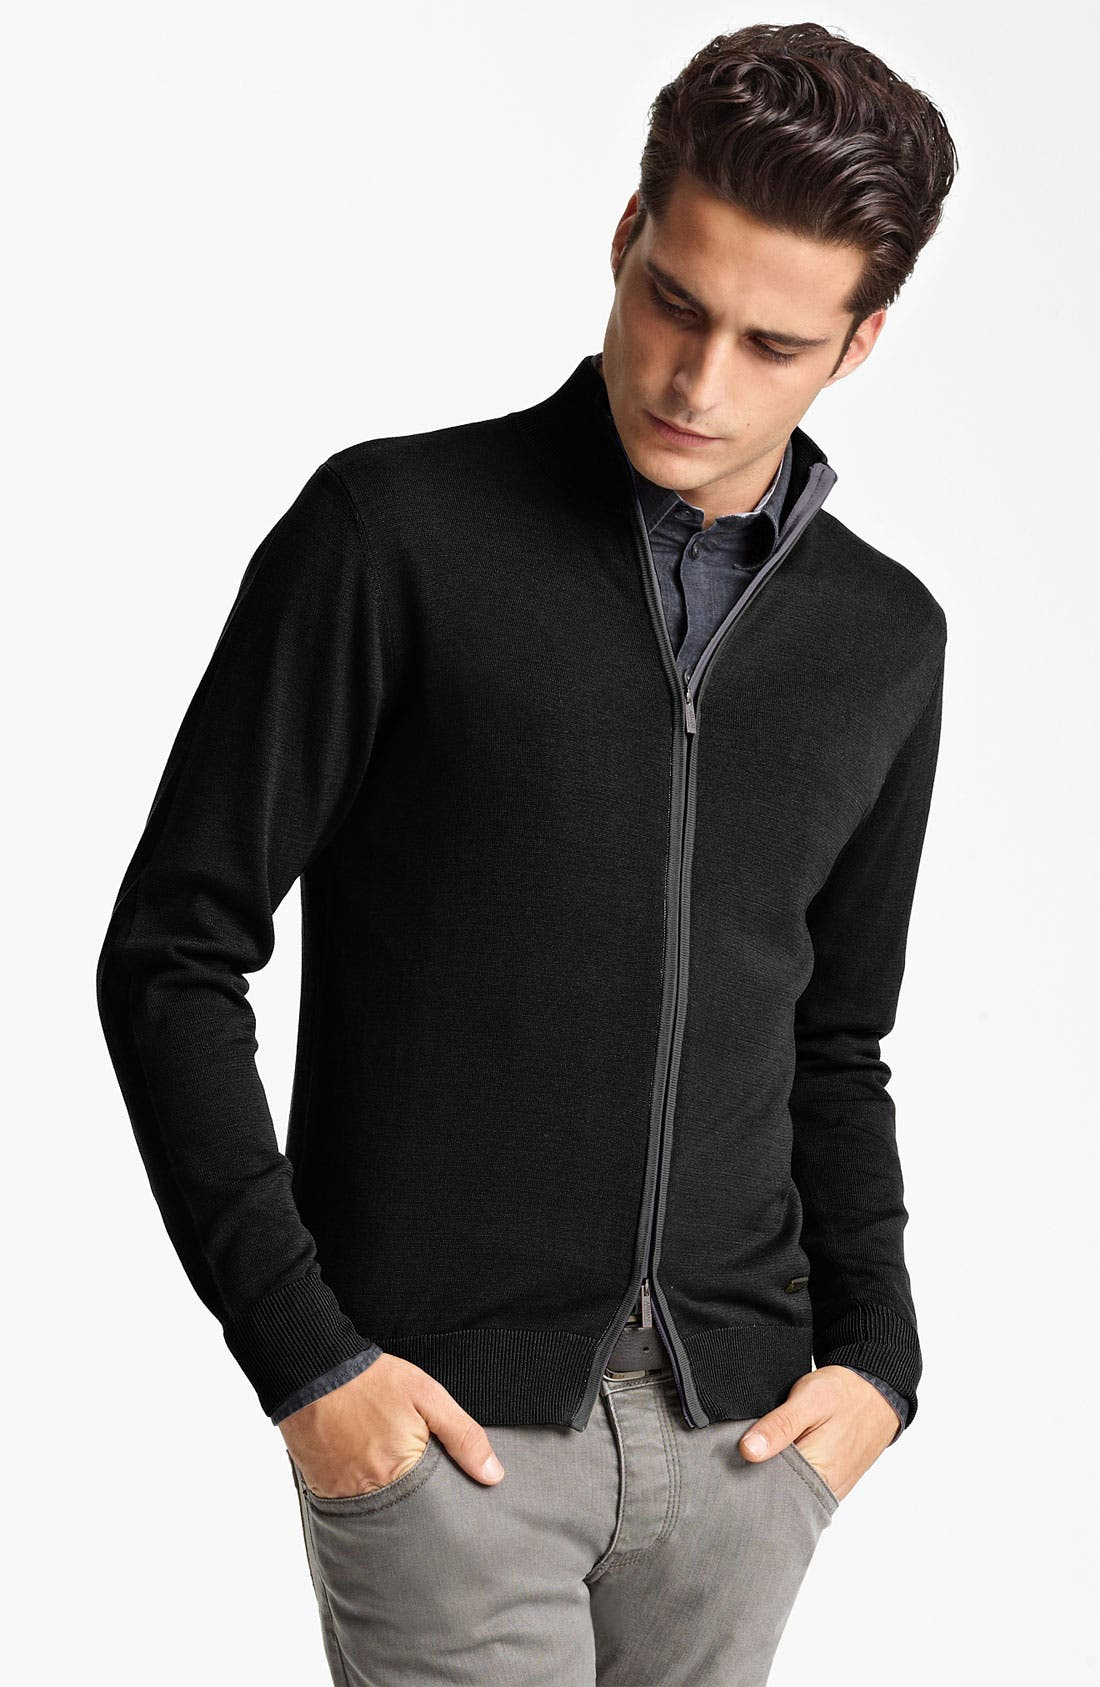 Alternate Image 1 Selected - Armani Collezioni Silk & Cotton Zip Sweater